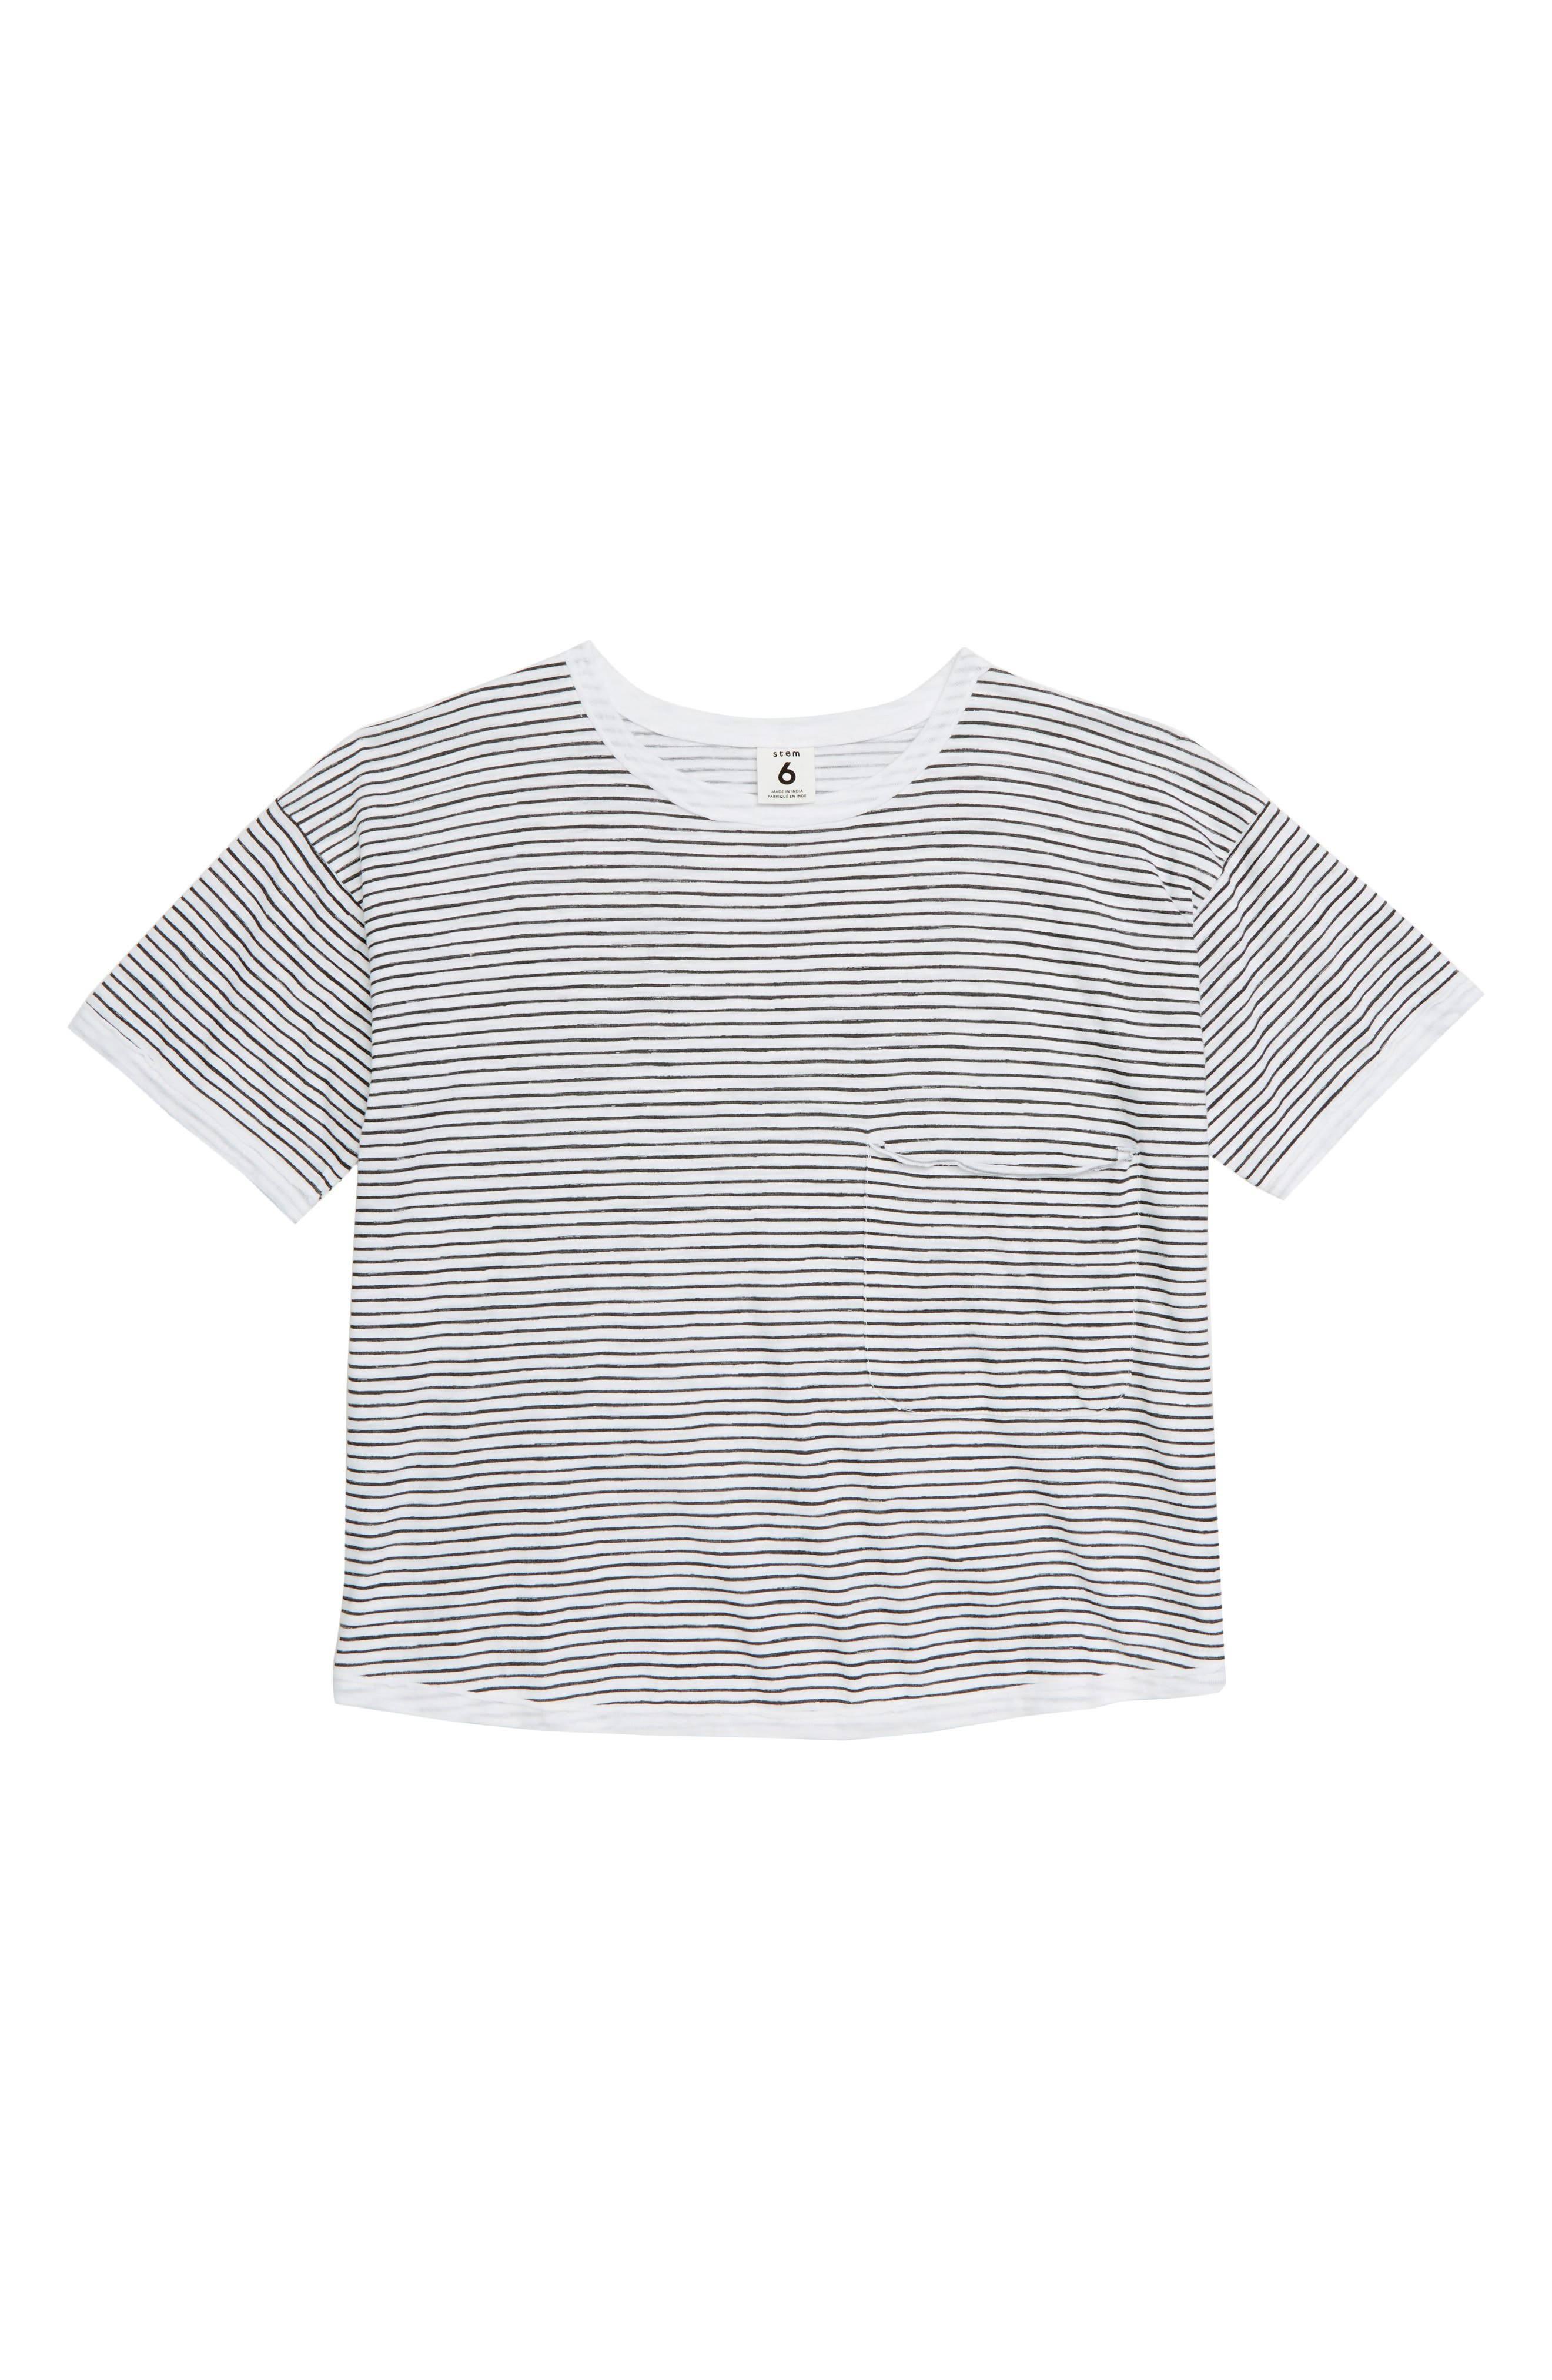 Painted Stripe T-Shirt,                             Main thumbnail 1, color,                             WHITE- GREY PAINTED STRIPE